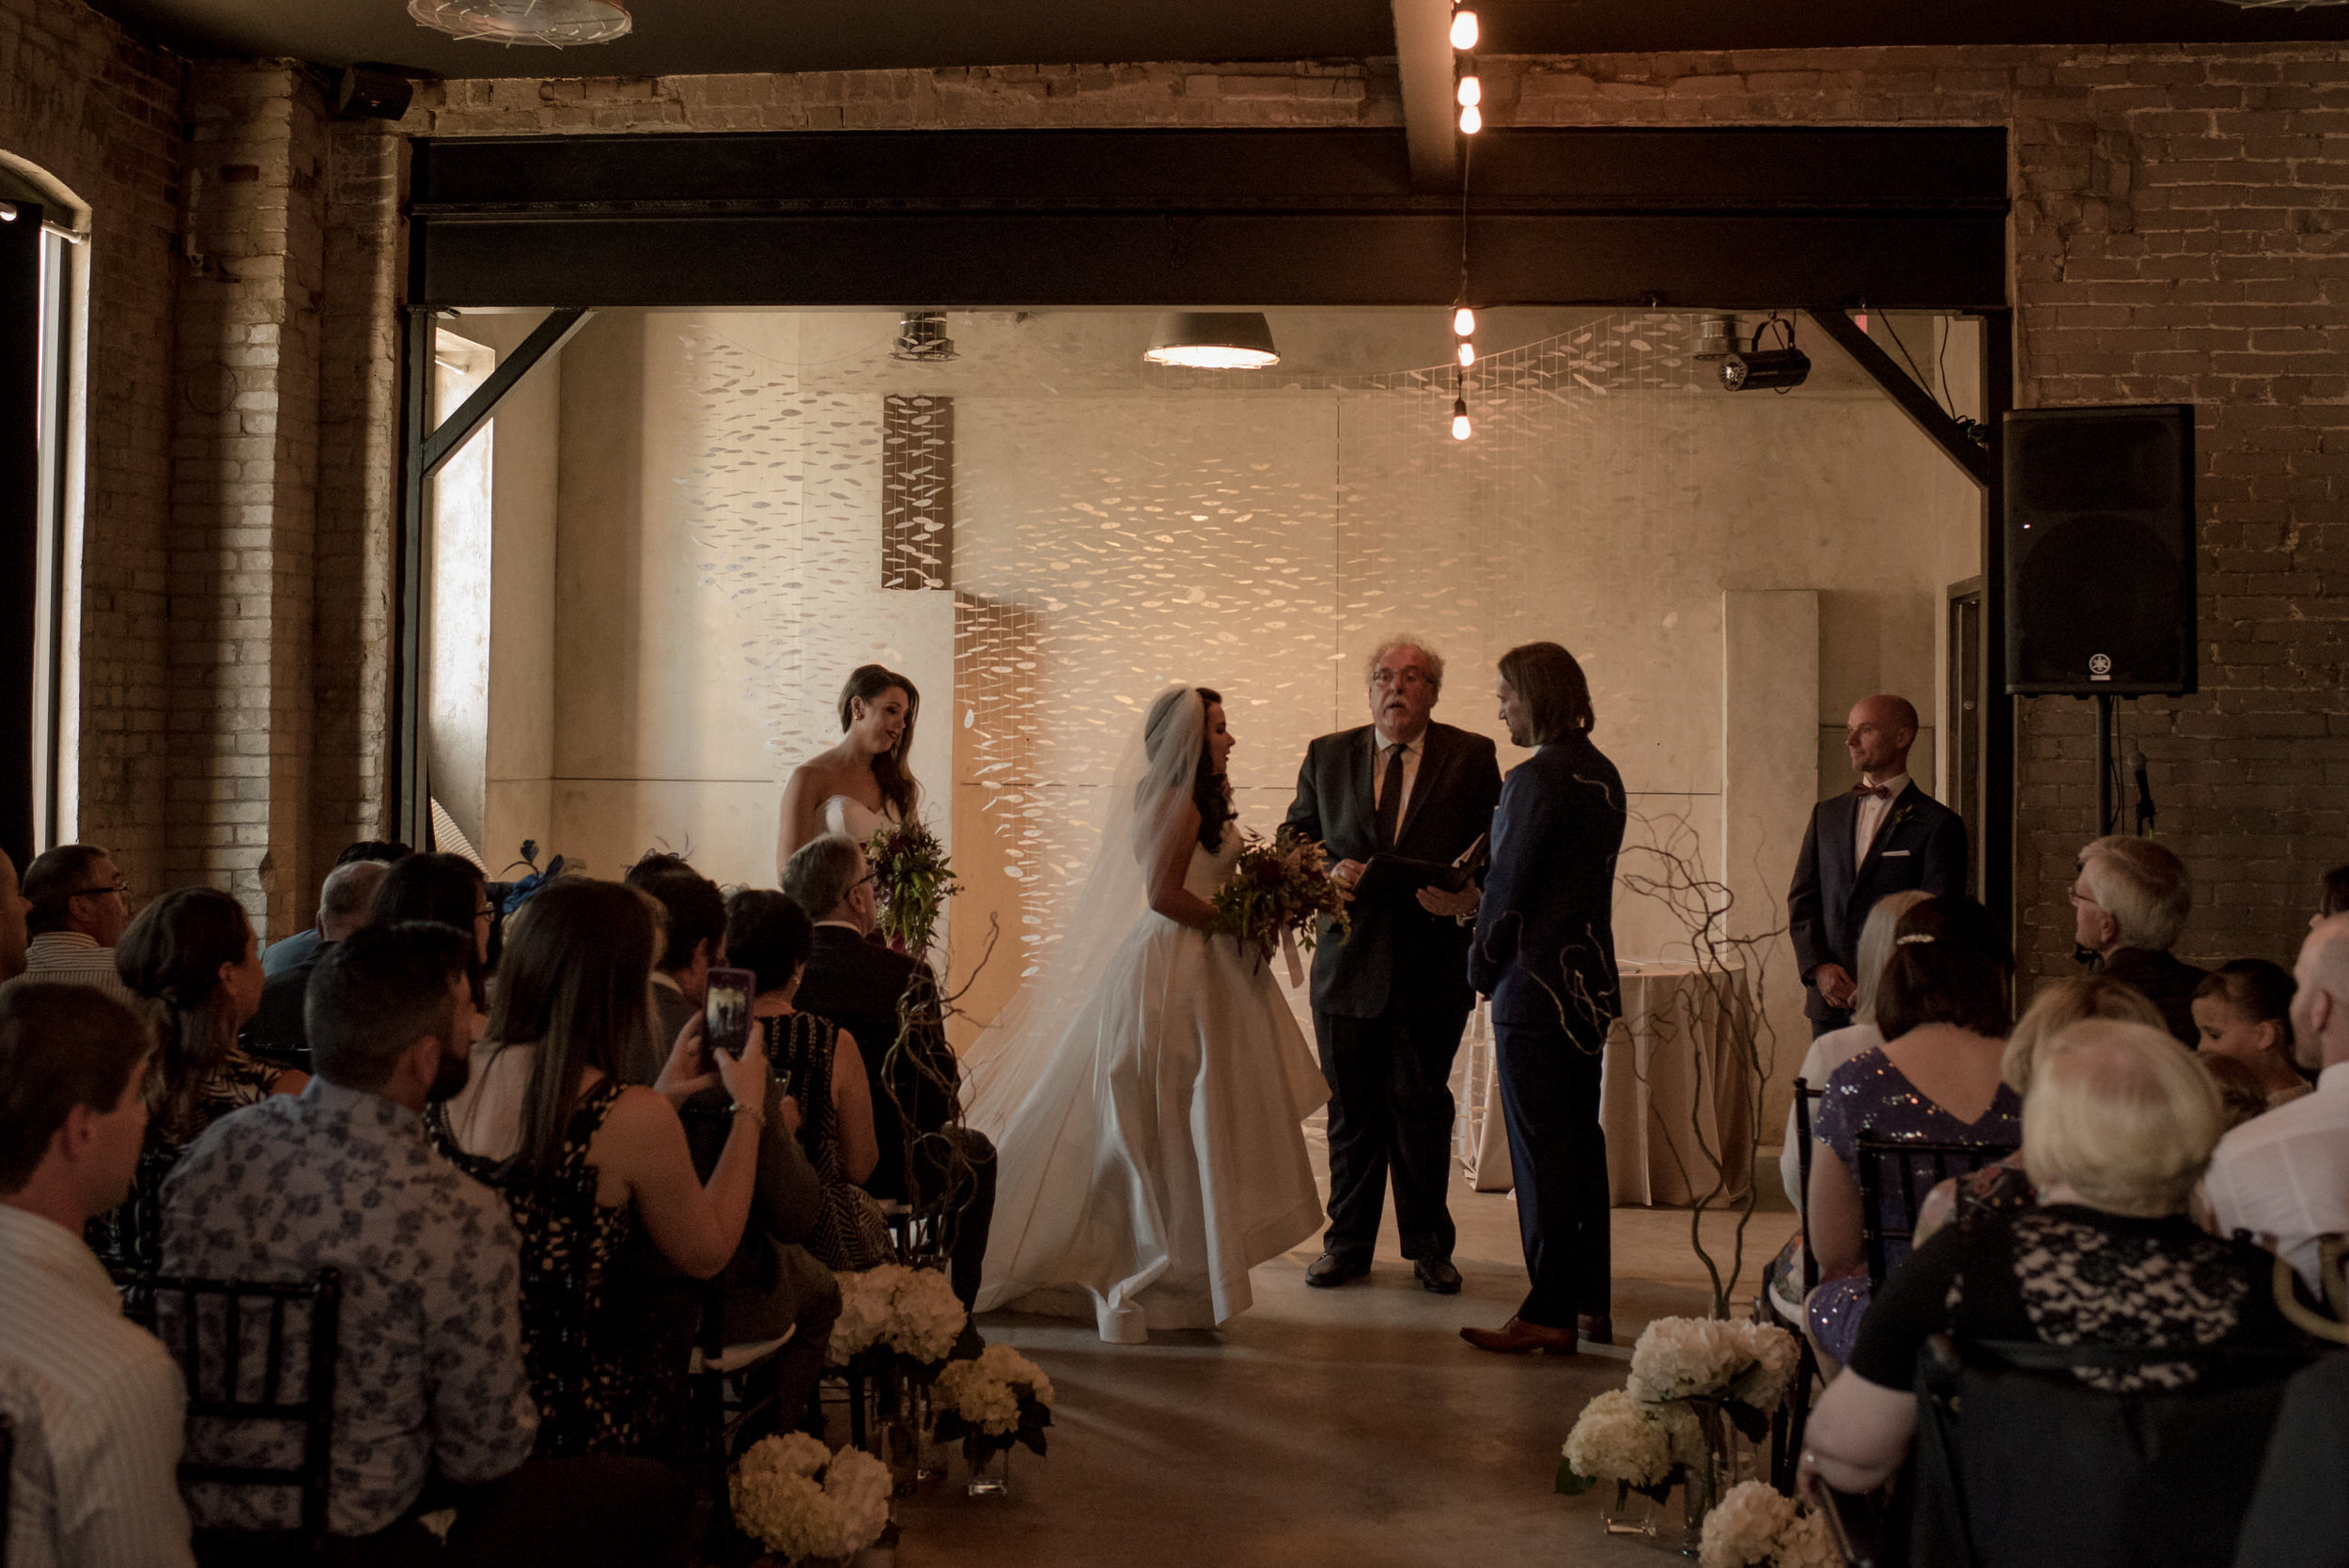 Edmonton_wedding_foundry_room_andrea_michael_calgary-engagement-31.jpg